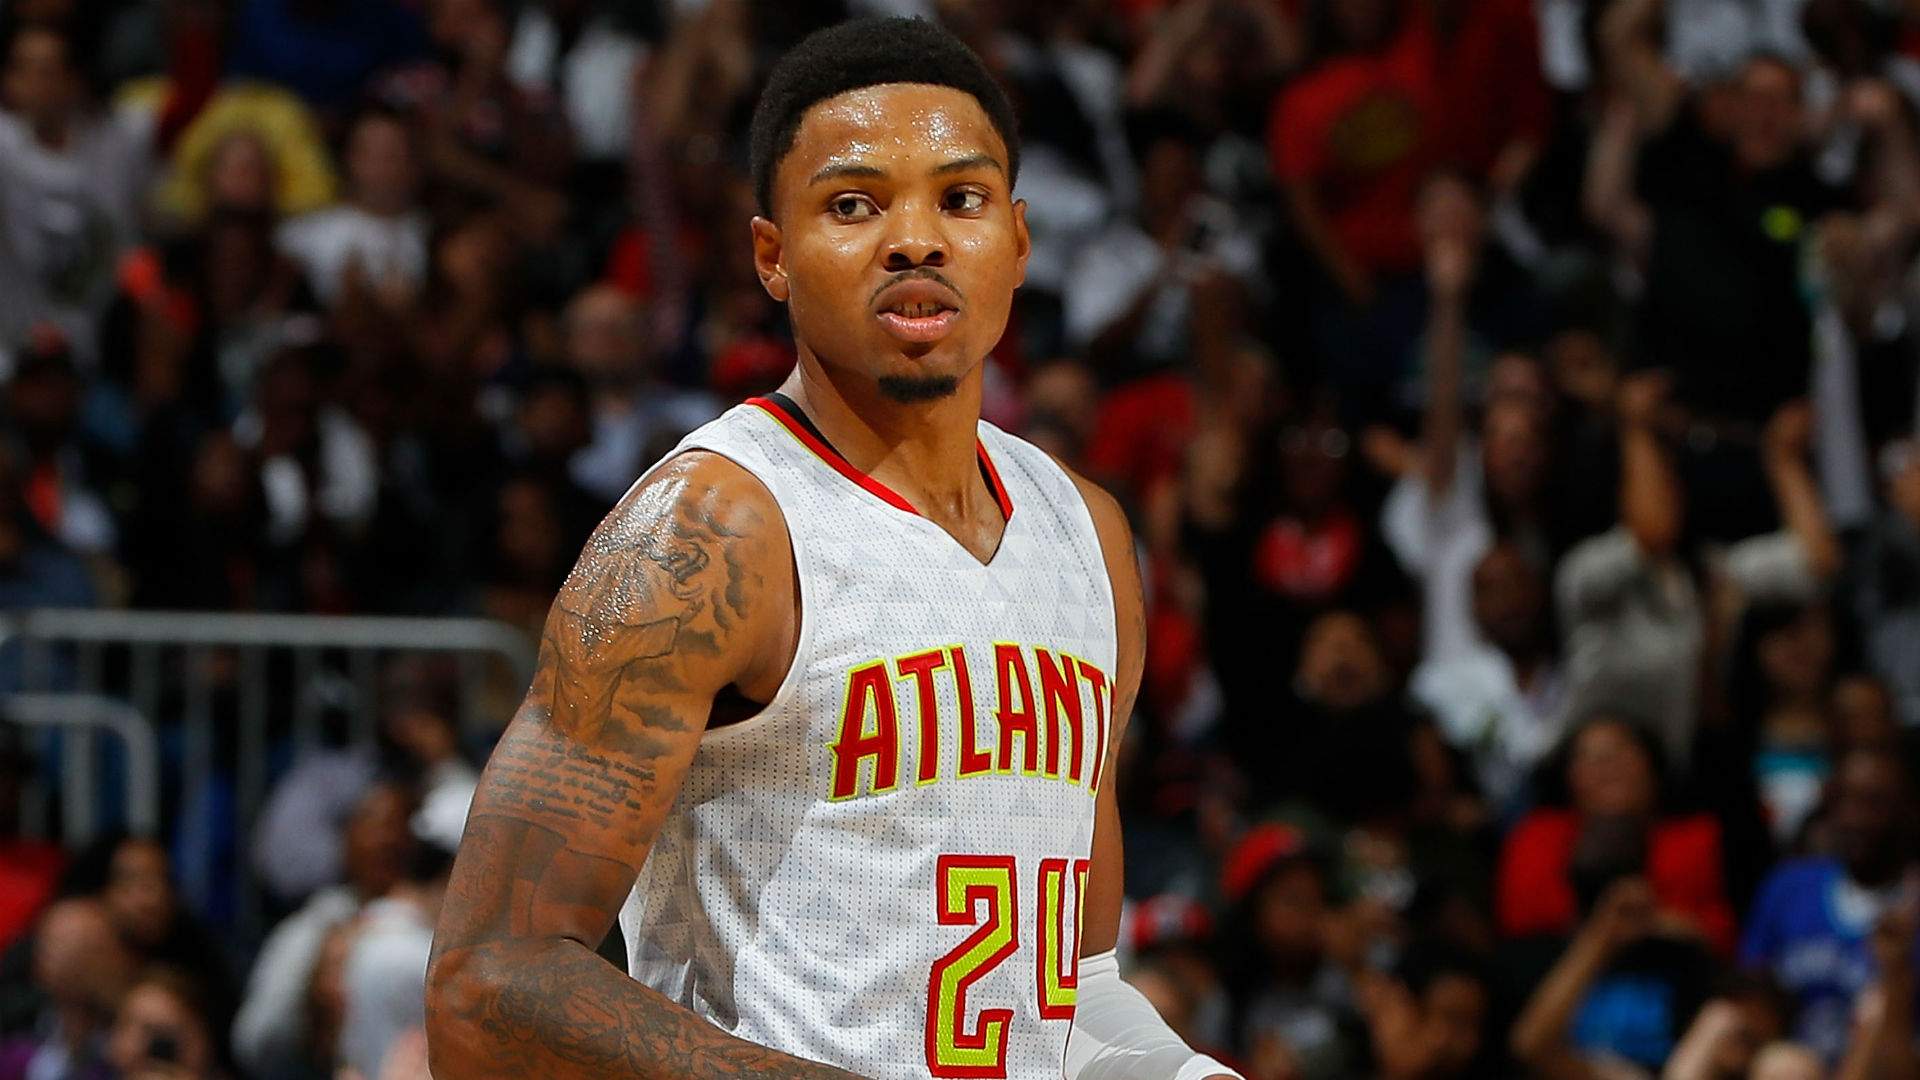 SN exclusive: Kent Bazemore breaks with Steph Curry on opinion of Donald Trump | NBA | Sporting News